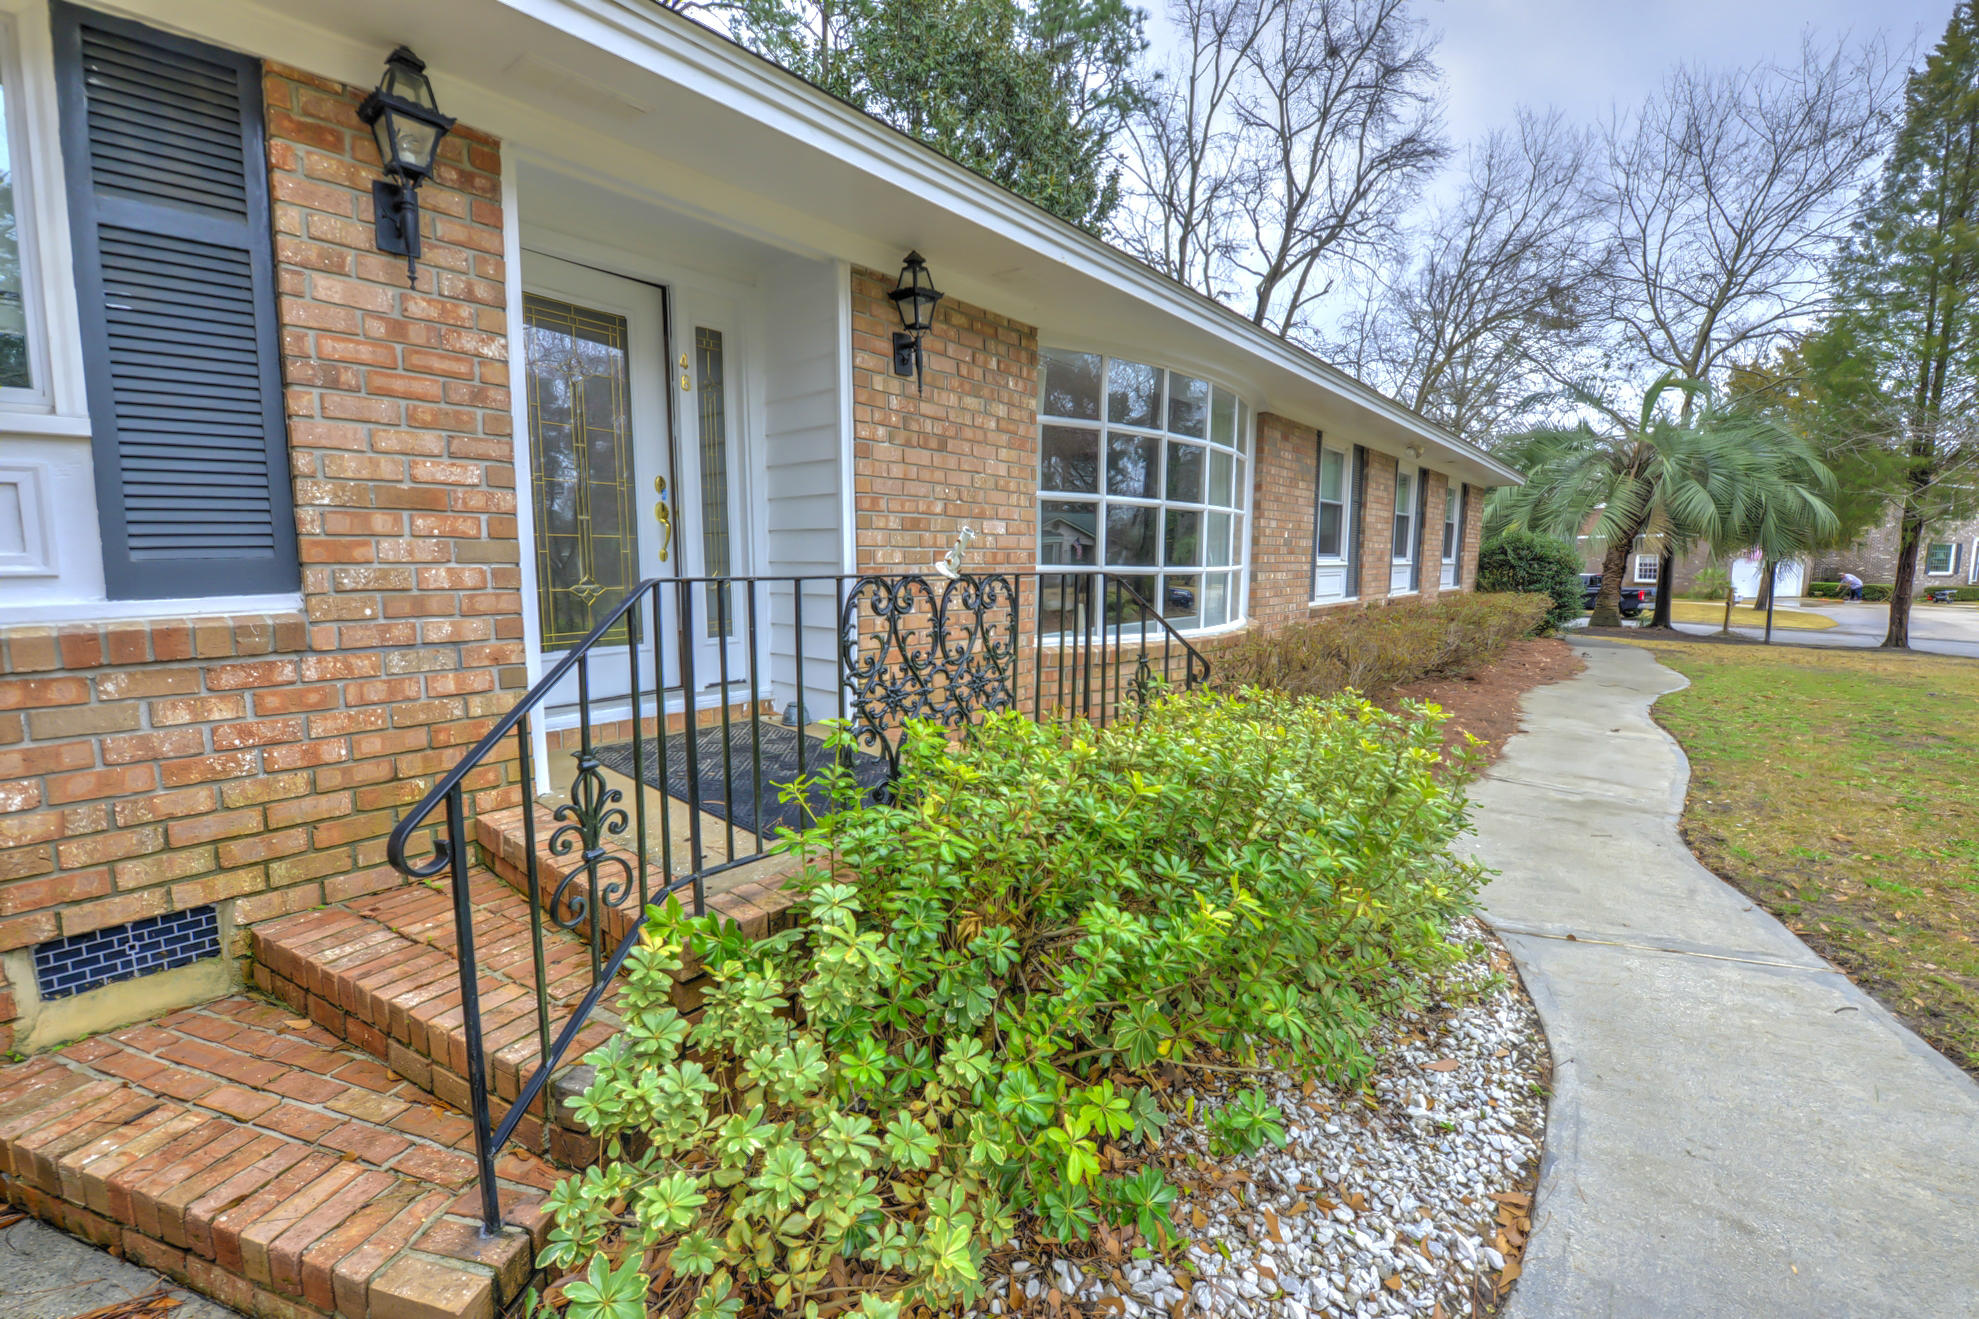 Photo of 46 Sorento Blvd, Hanahan, SC 29410